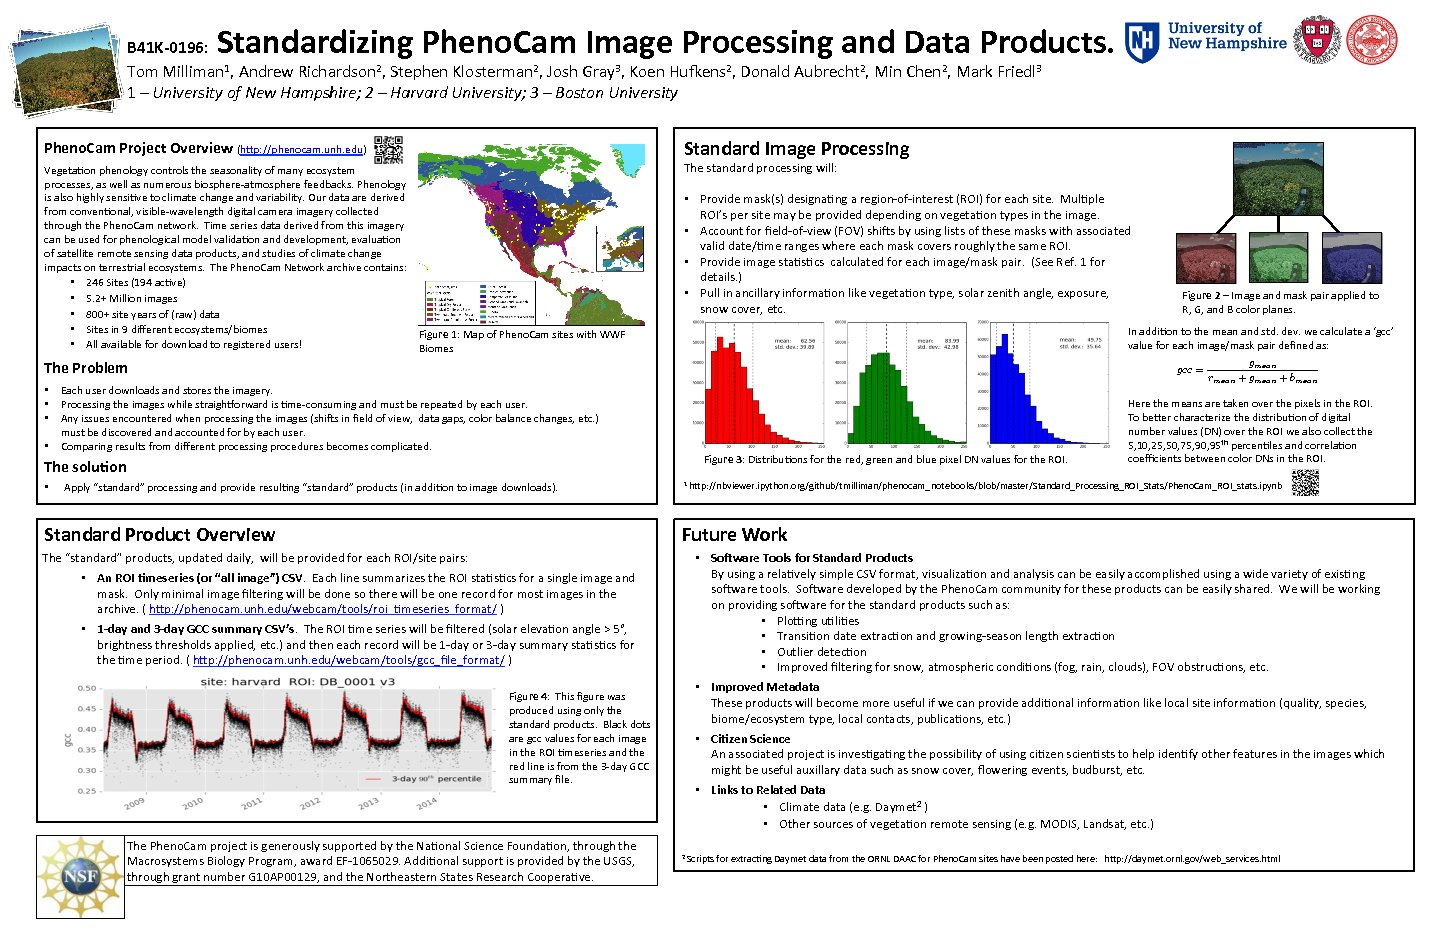 Standardizing Phenocam Image Processing And Data Products by tmilliman